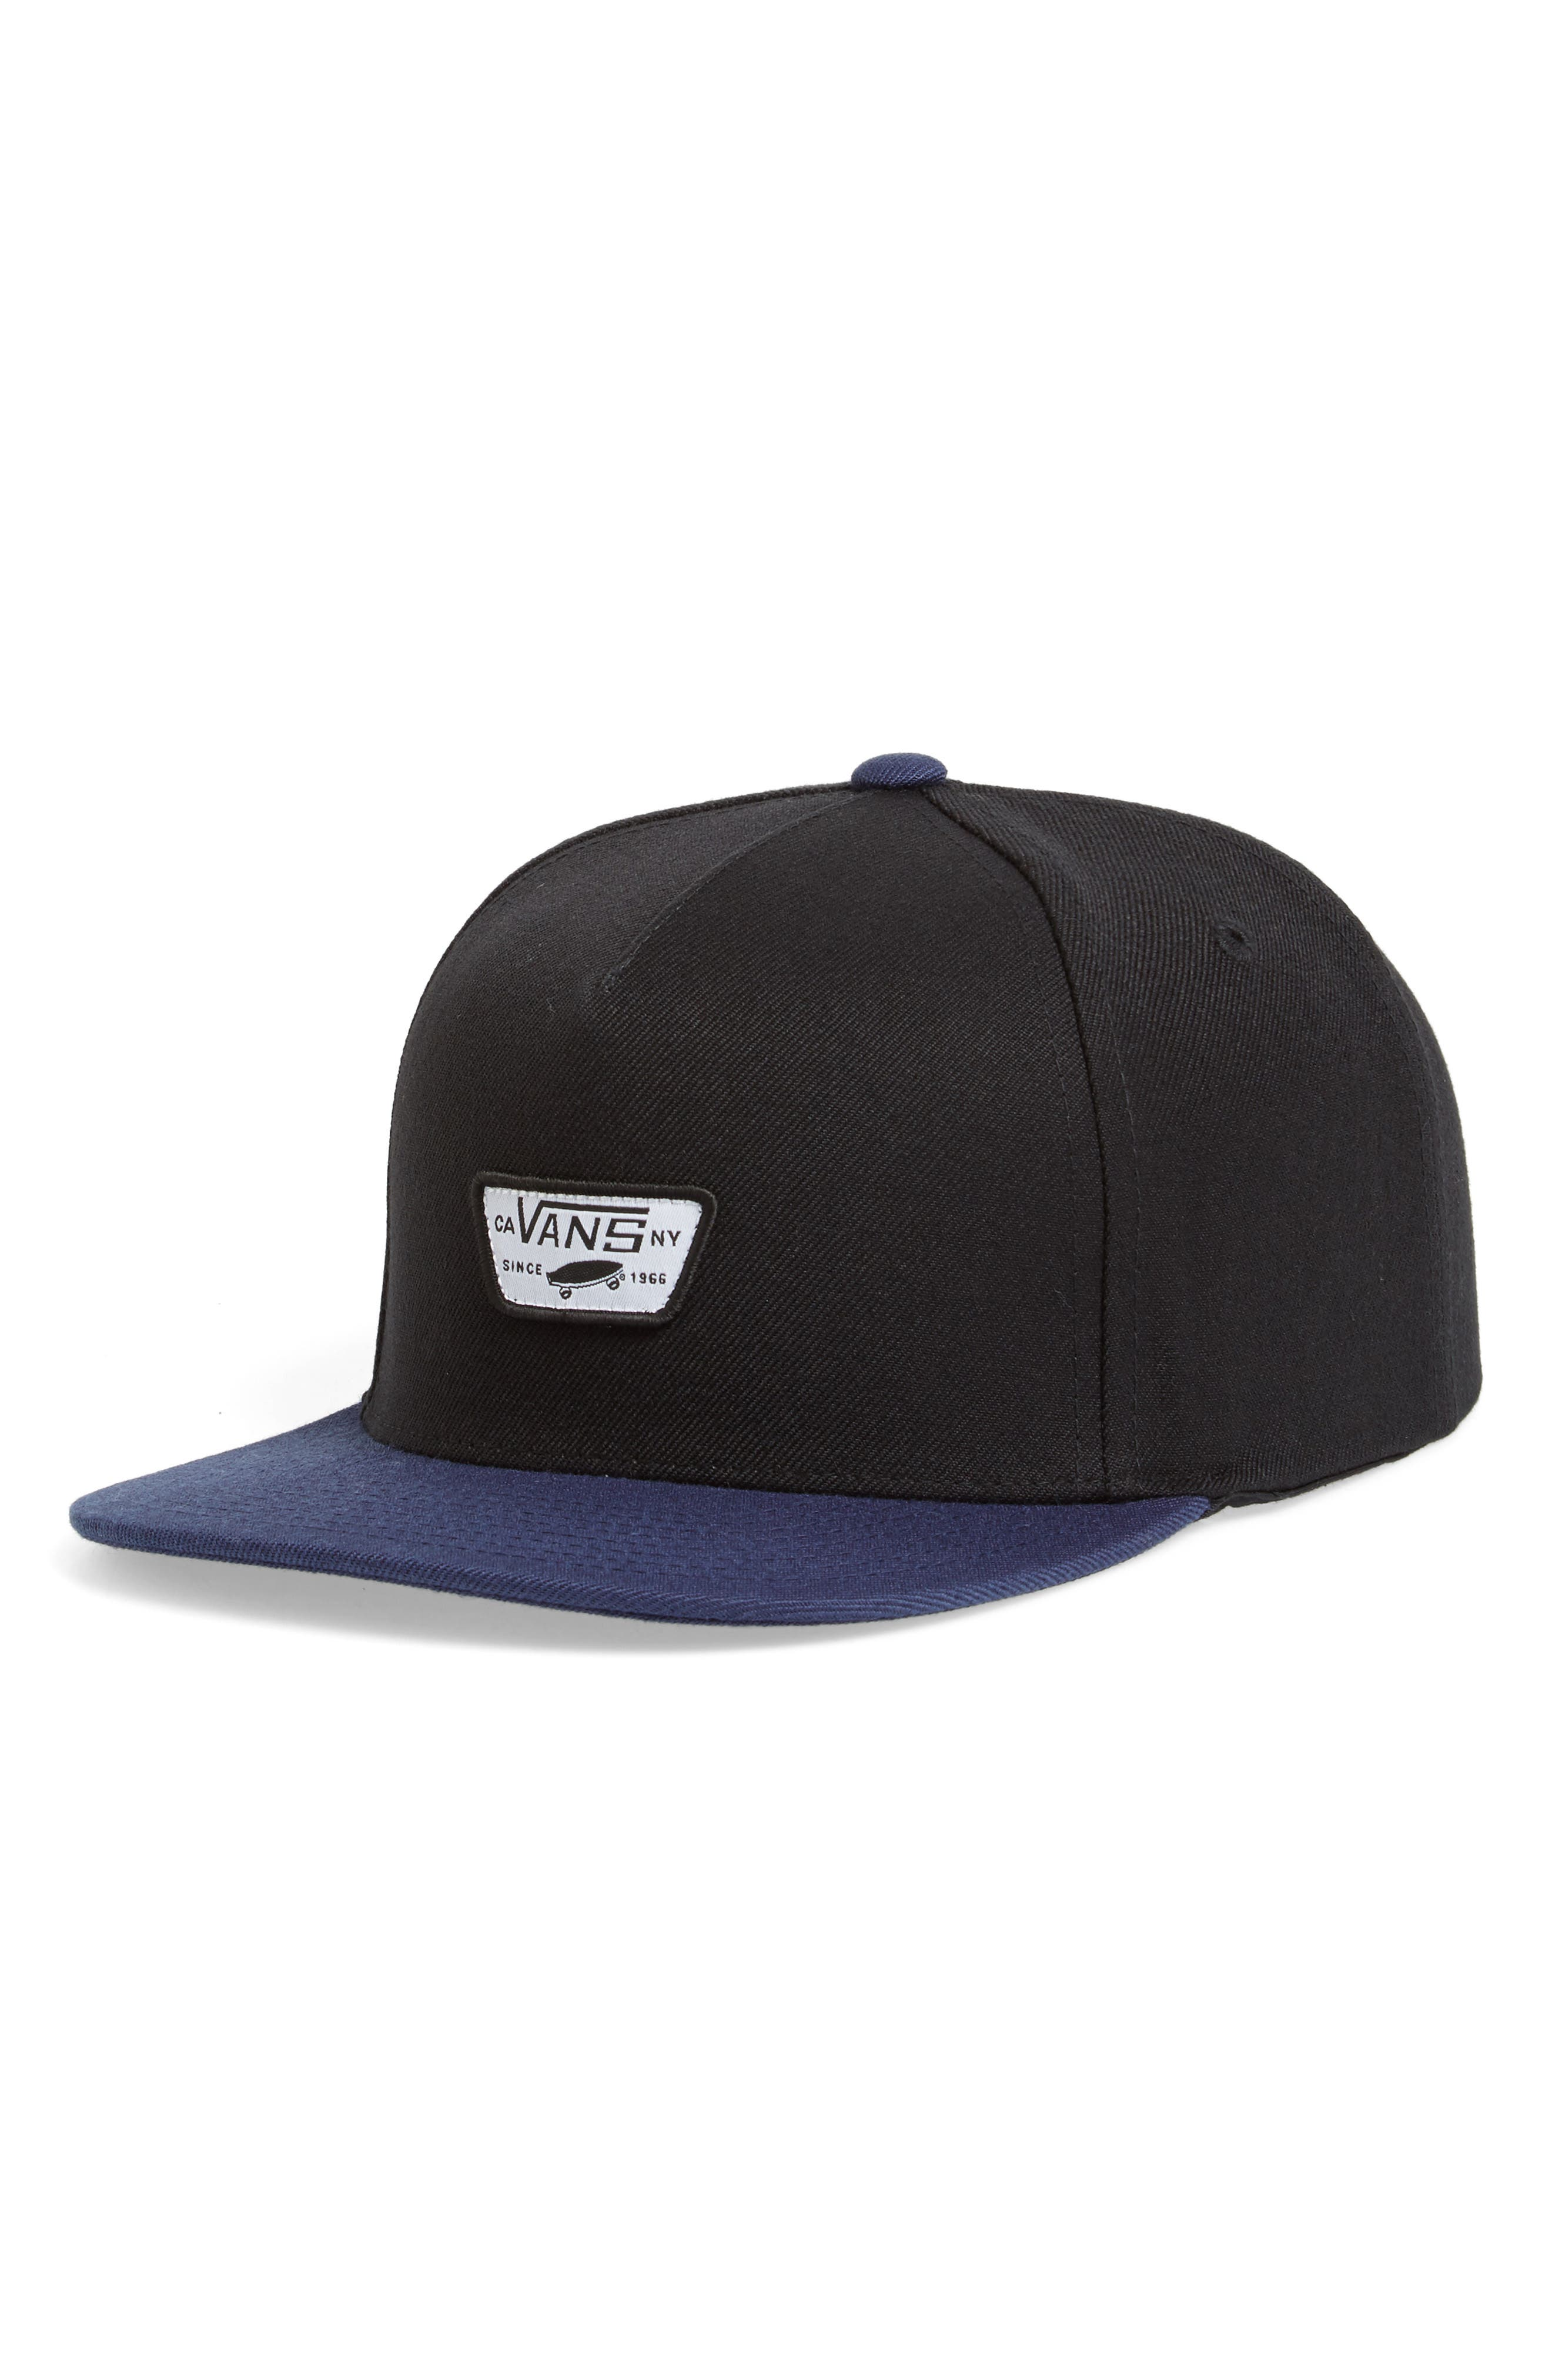 Alternate Image 1 Selected - Vans Mini Patch II Snapback Cap